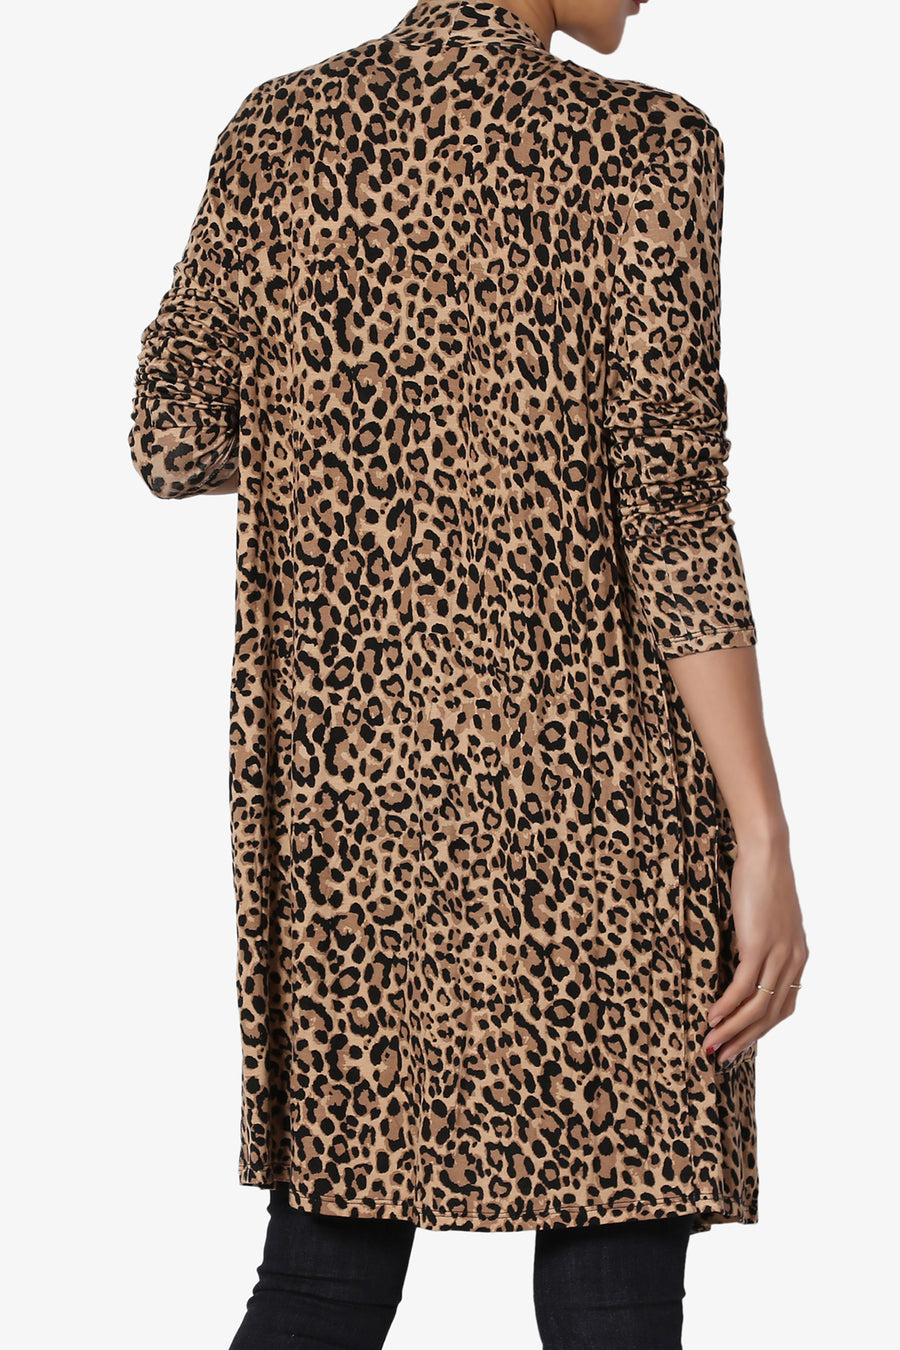 Vanish Leopard Print Open Cardigan - TheMogan